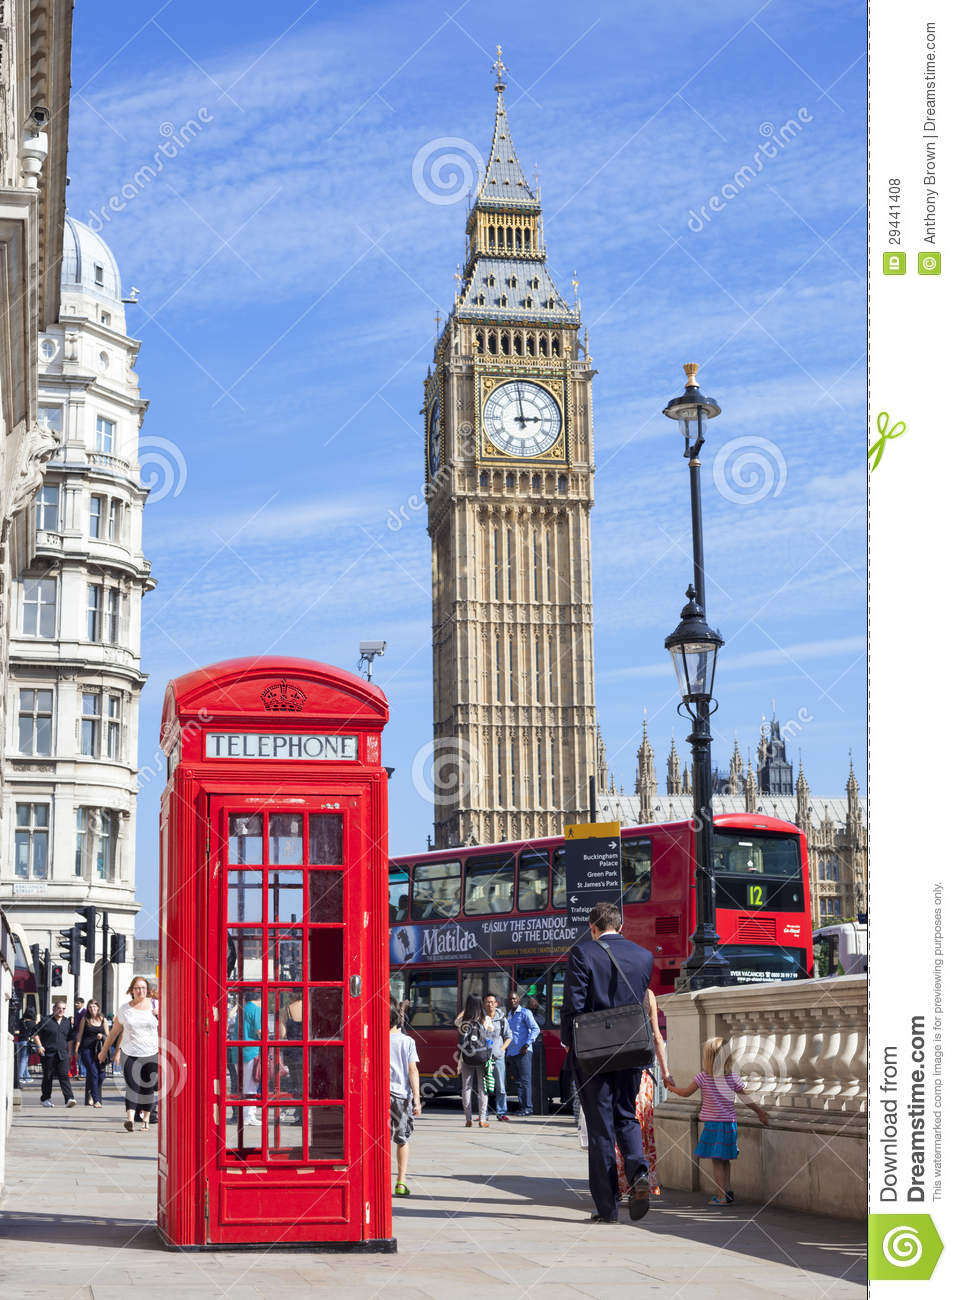 cabine t l phonique rouge westminster angleterre photo stock ditorial image 29441408. Black Bedroom Furniture Sets. Home Design Ideas